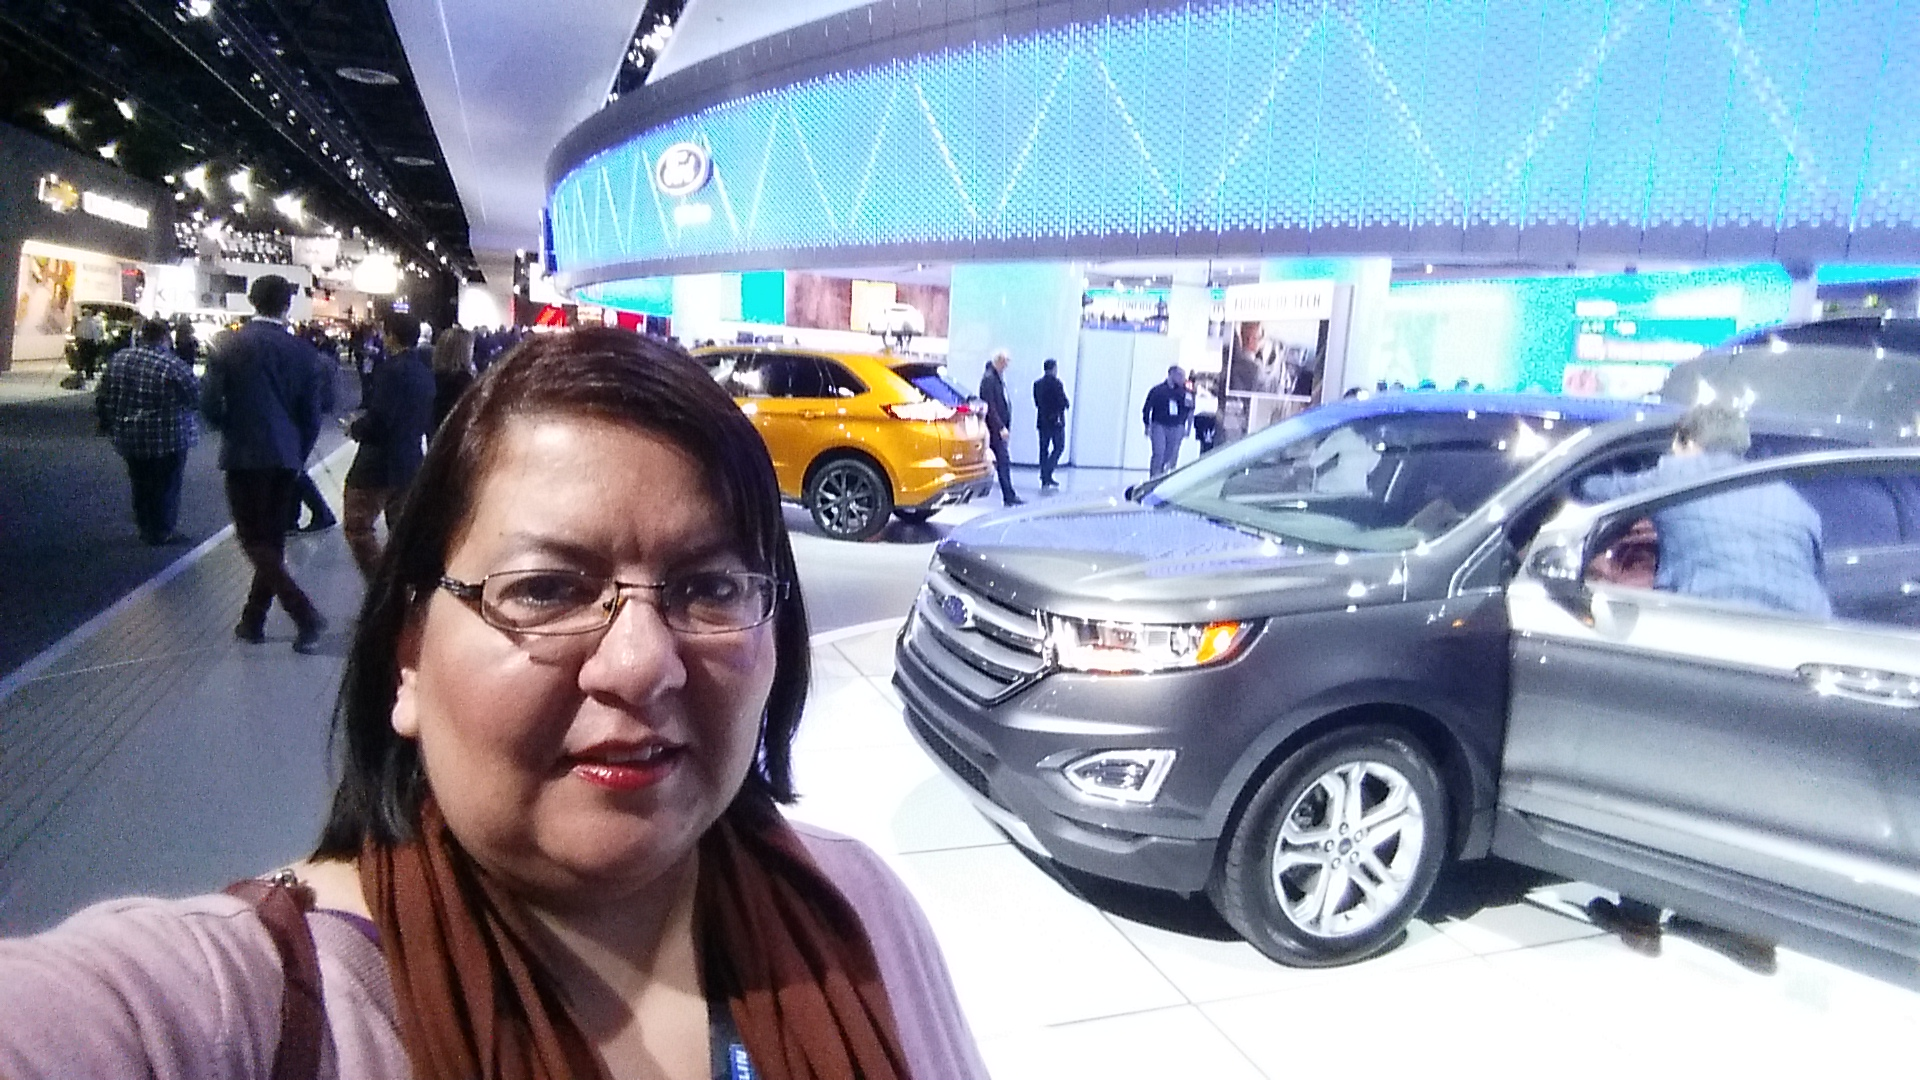 A trip to NAIAS, life-sized toys for the woman who knows nothing about cars